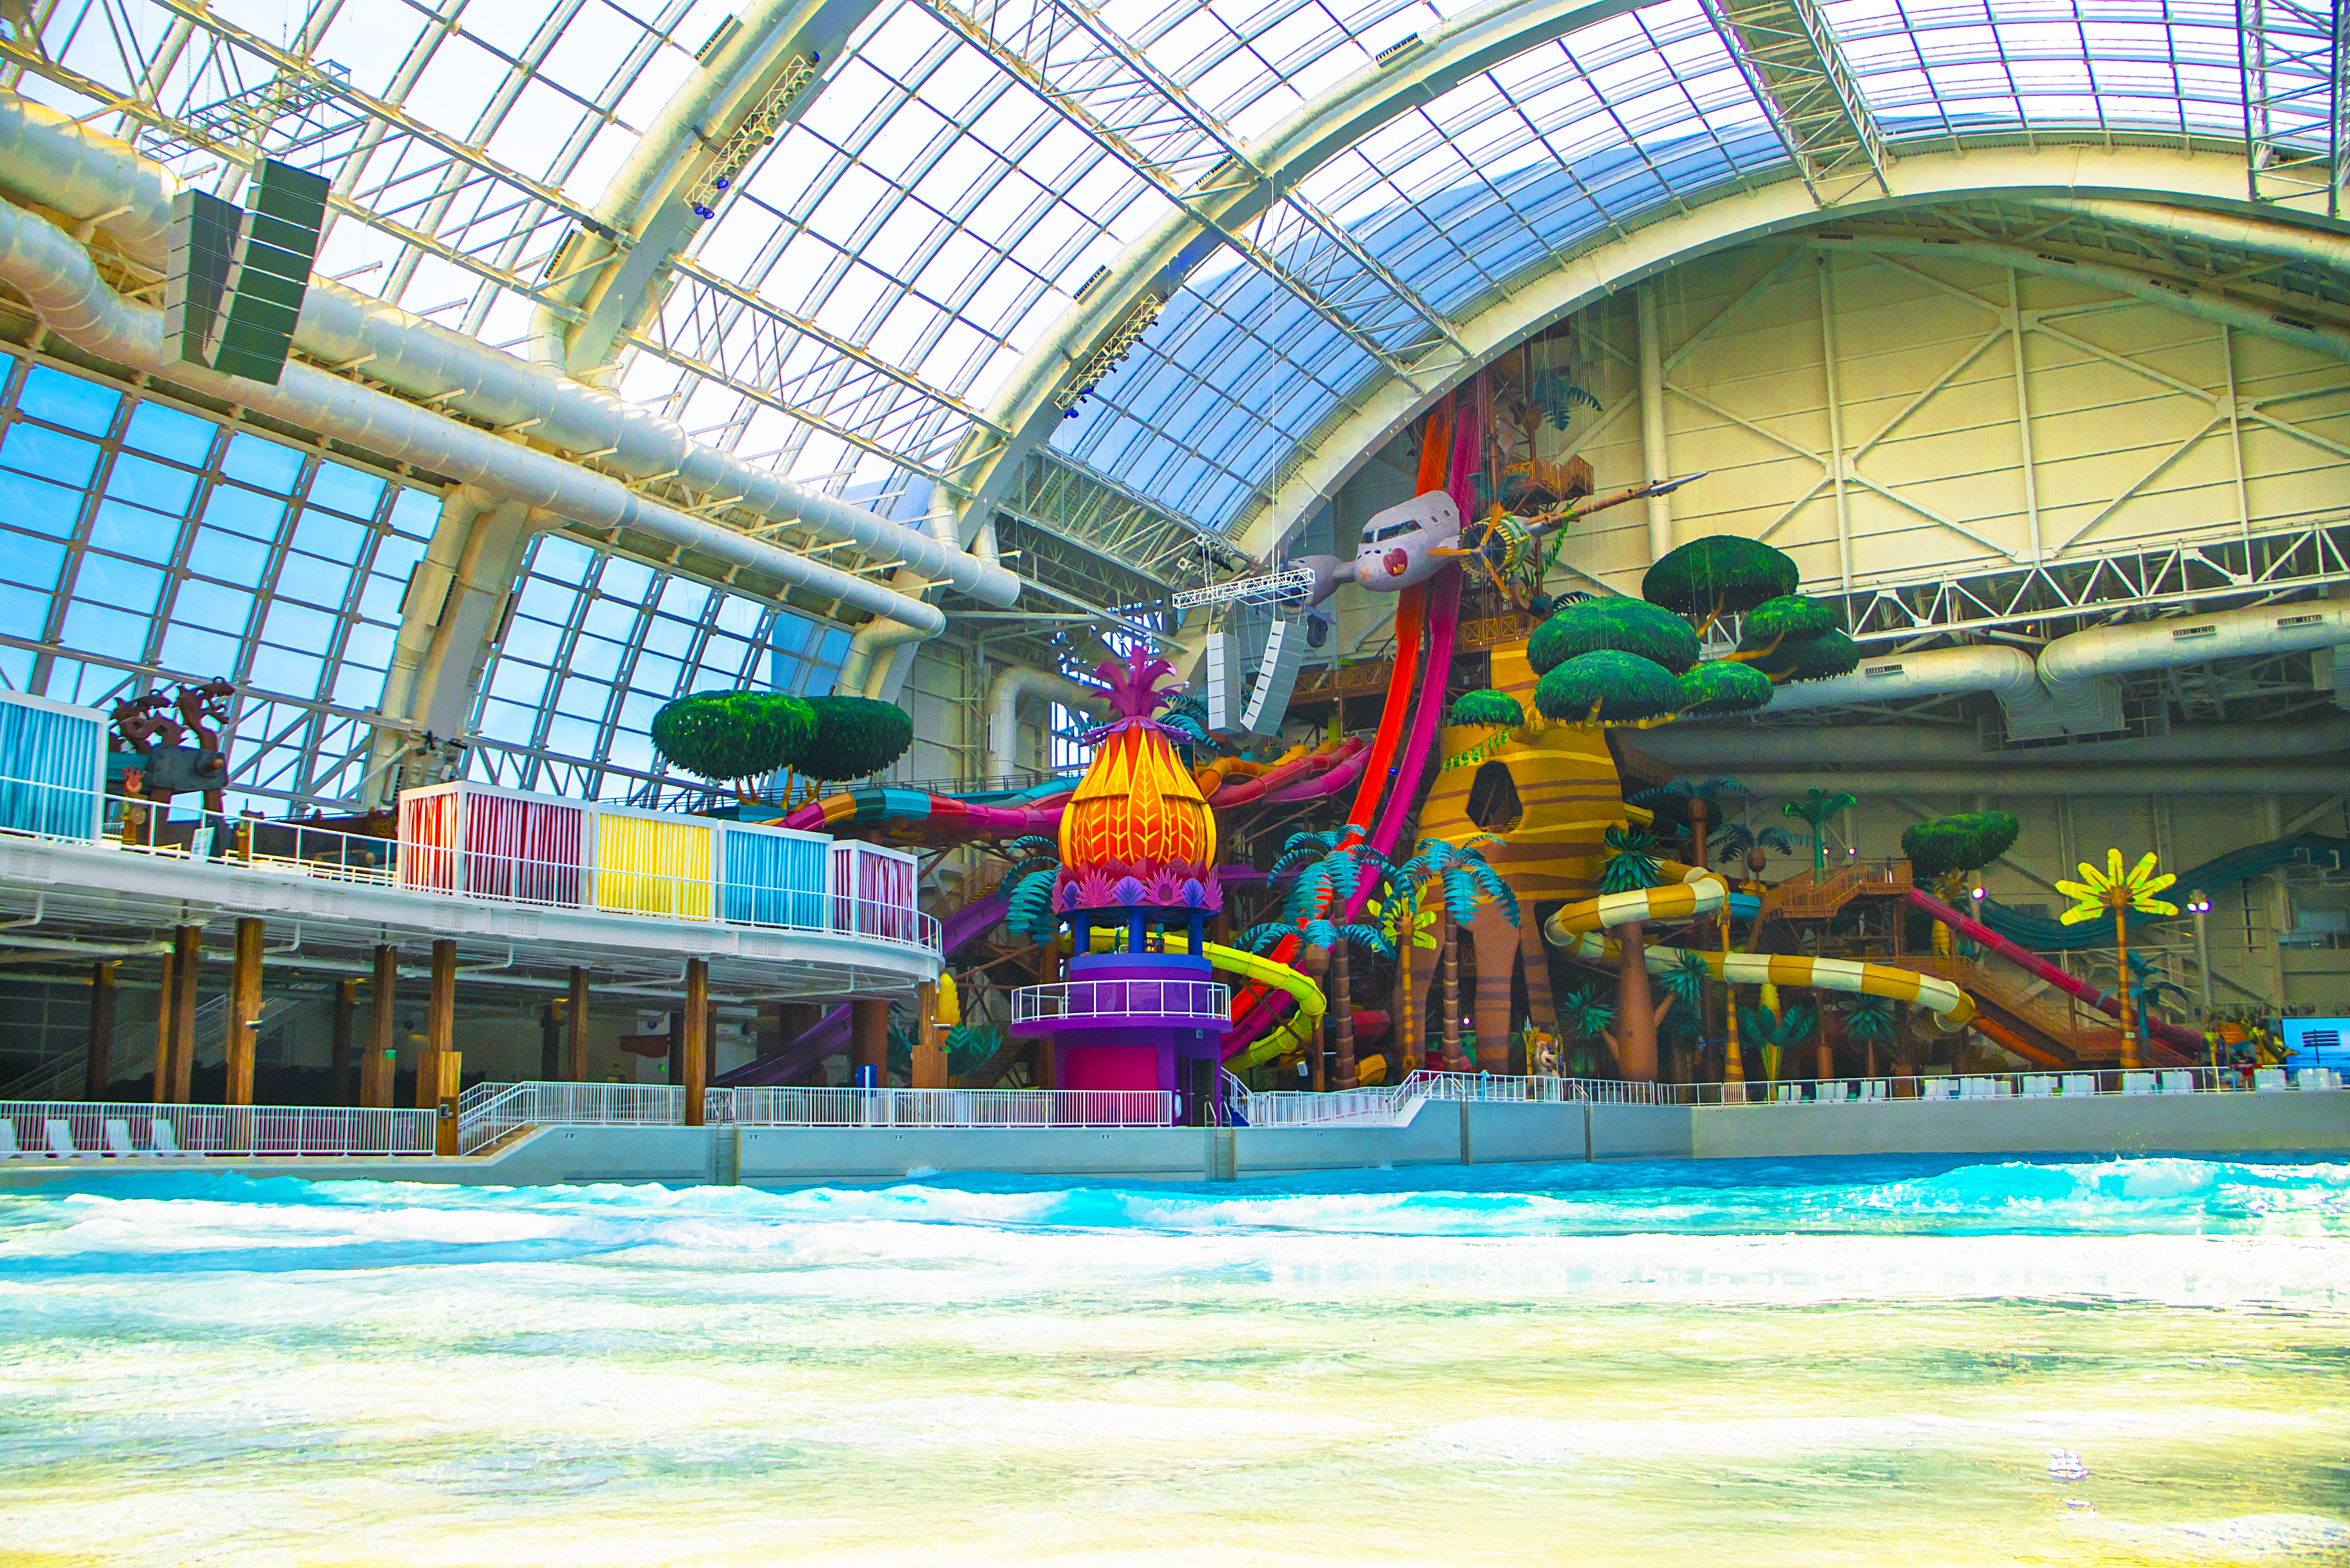 The 1.5-acre indoor wave pool at American Dream.